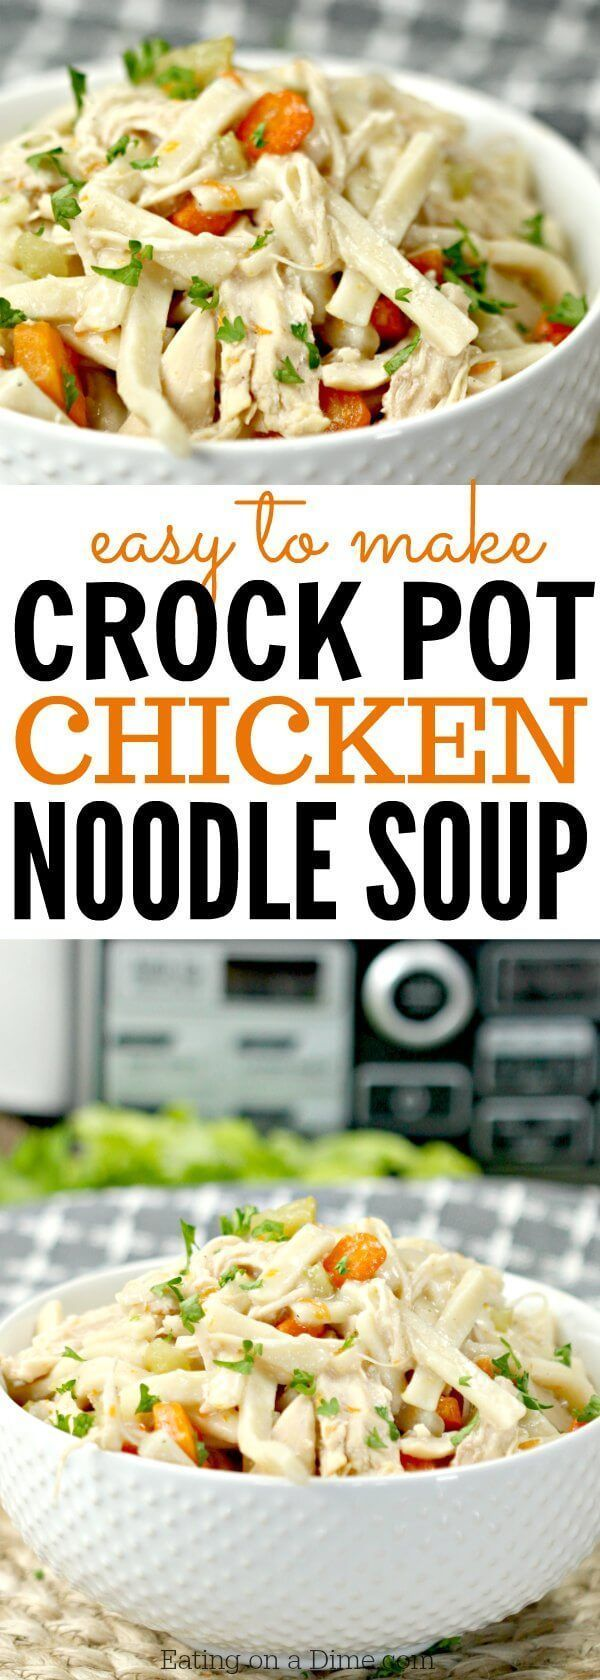 Crockpot Chicken Noodle Soup #chickennoodlesoup